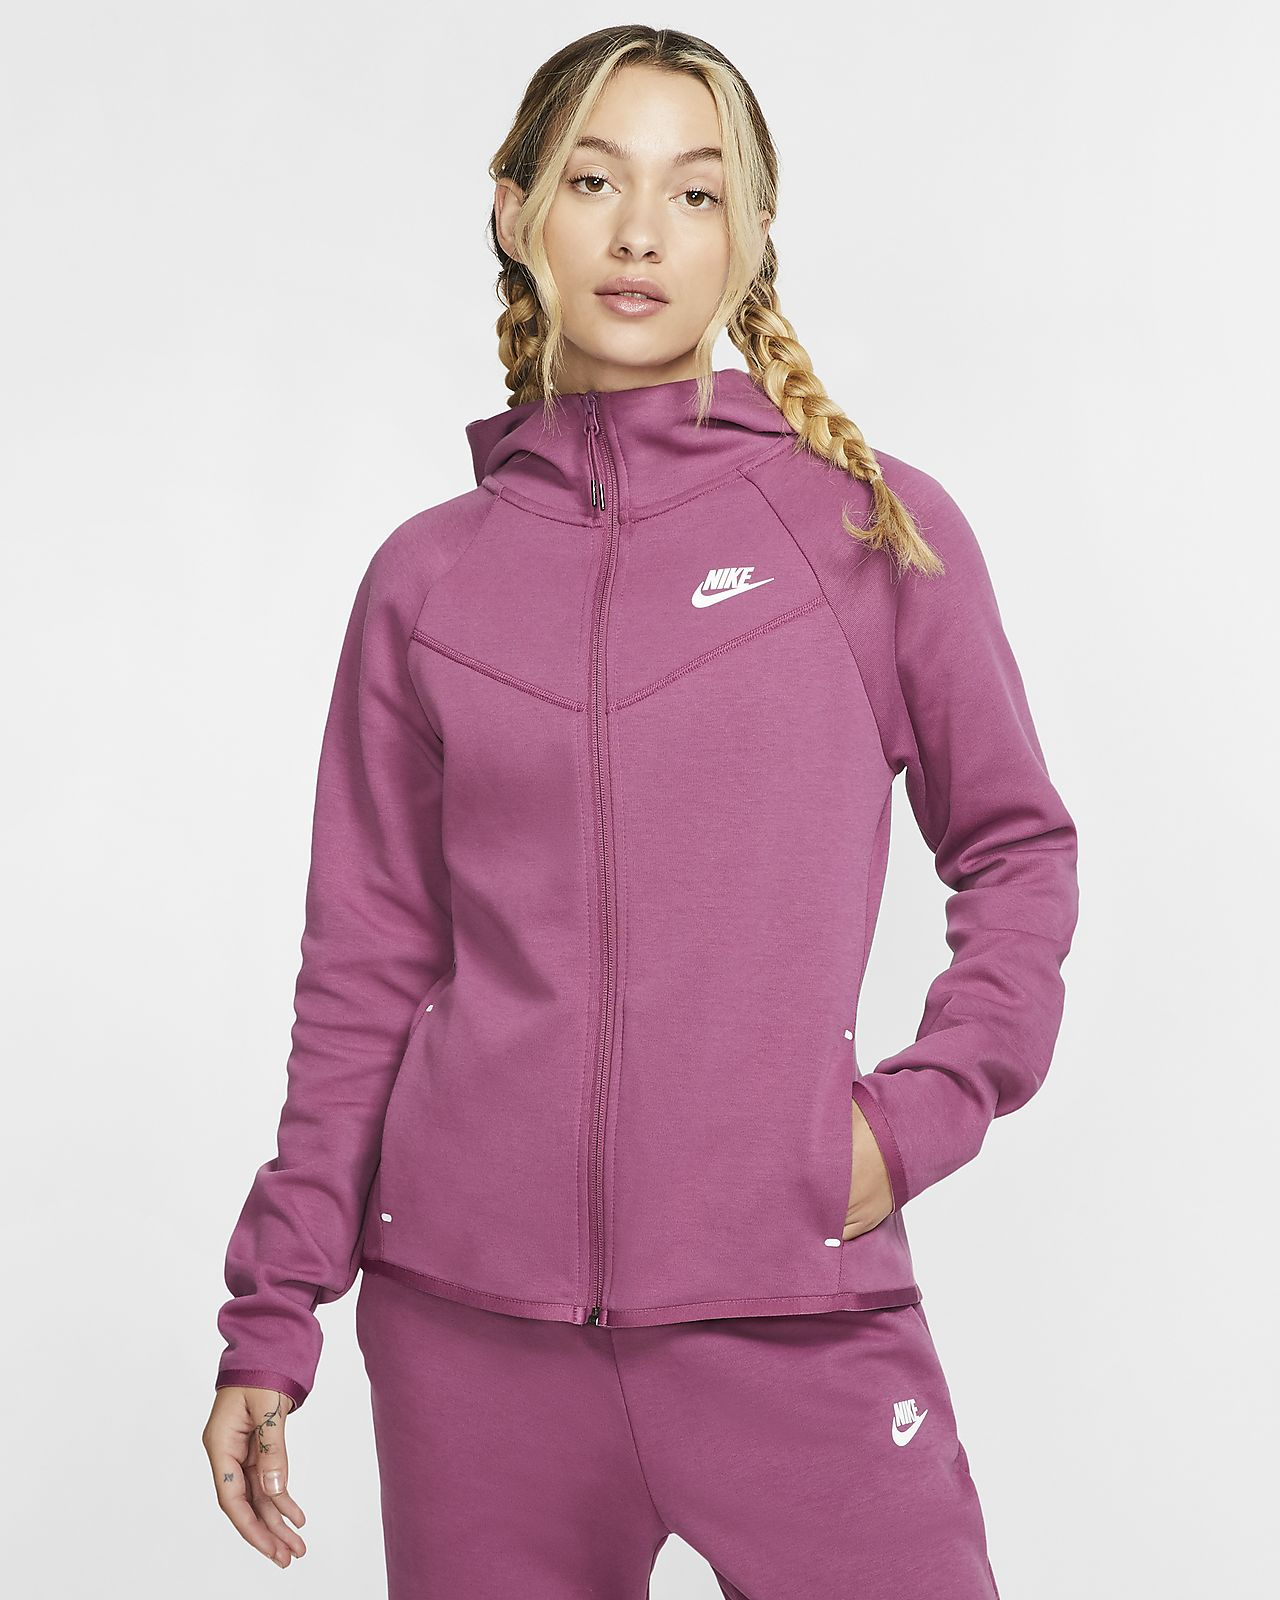 Nike Sportswear Windrunner Tech Fleece Women's Full Zip Hoodie